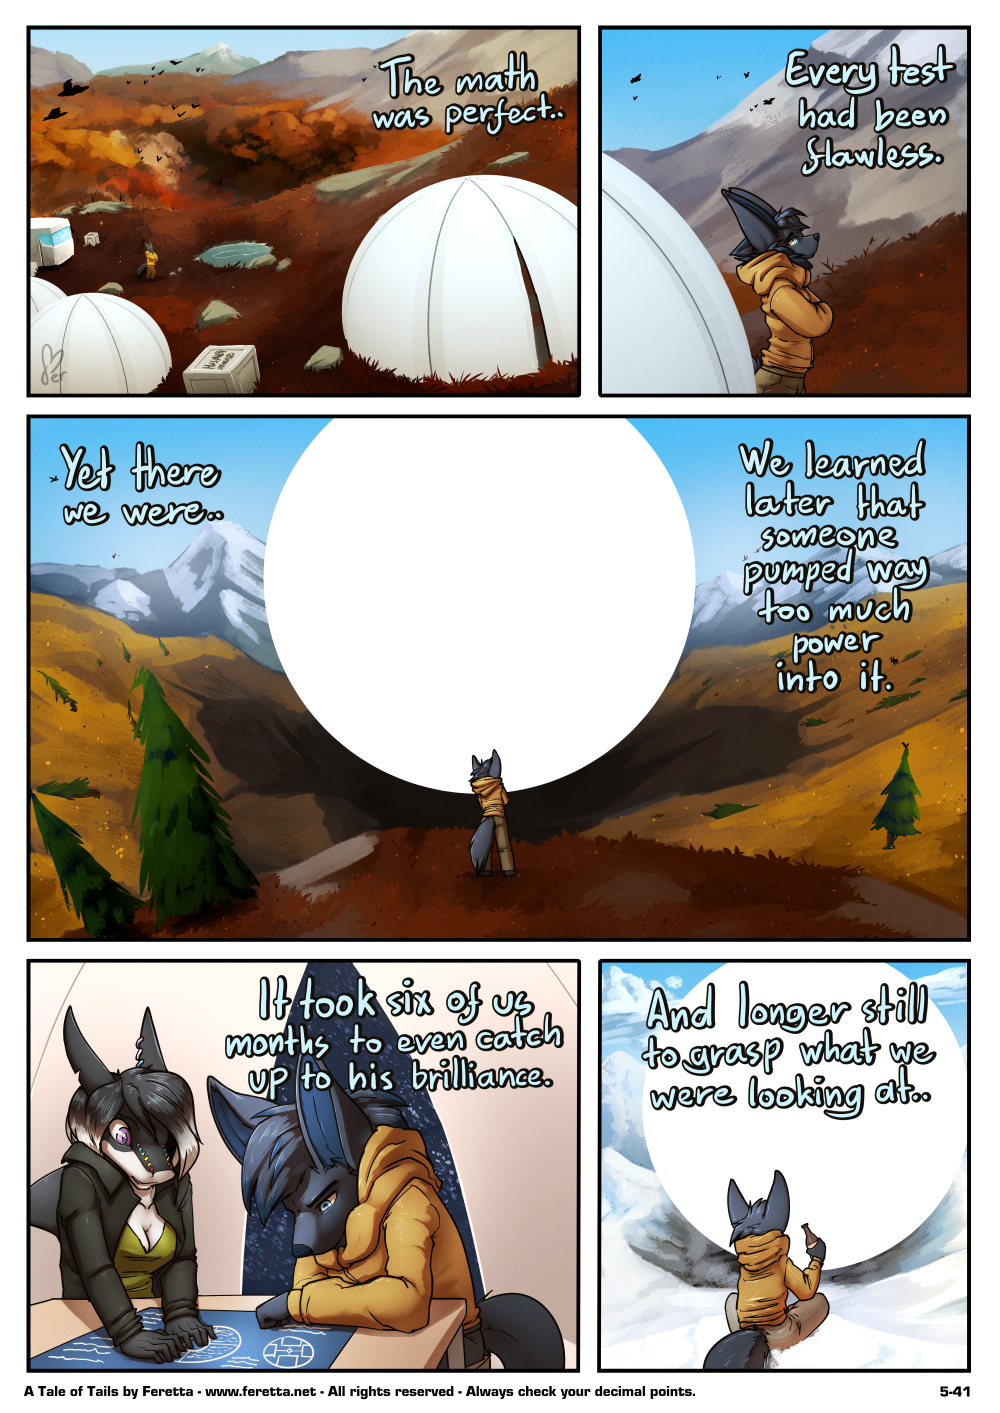 A Tale of Tails, 5-41